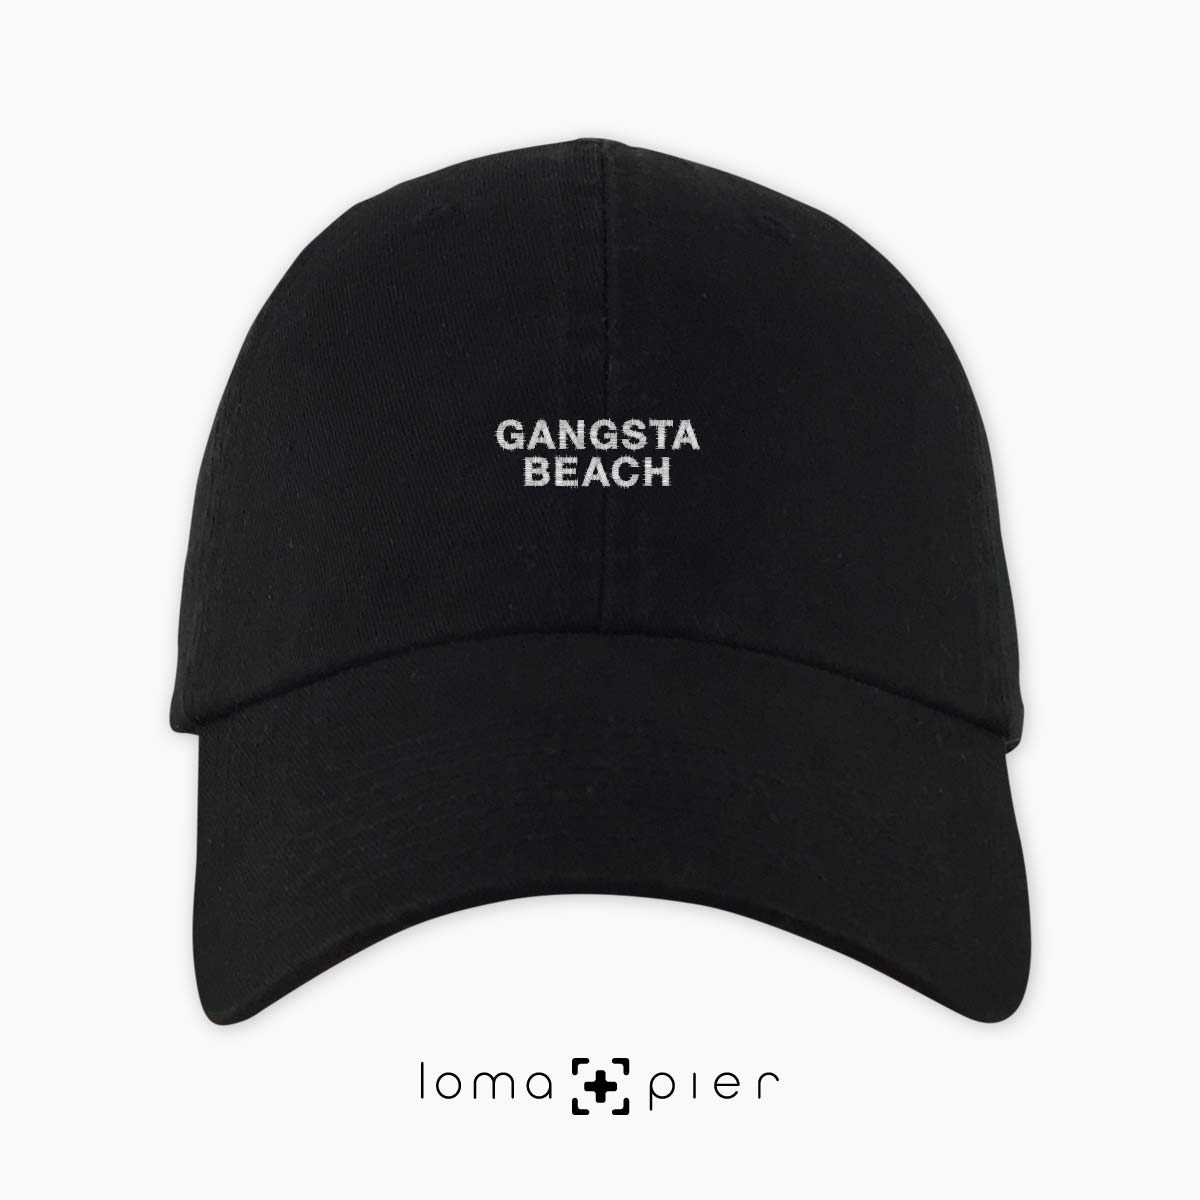 GANGSTA BEACH embroidered on a black unstructured dad hat by loma+pier hat store made in the USA